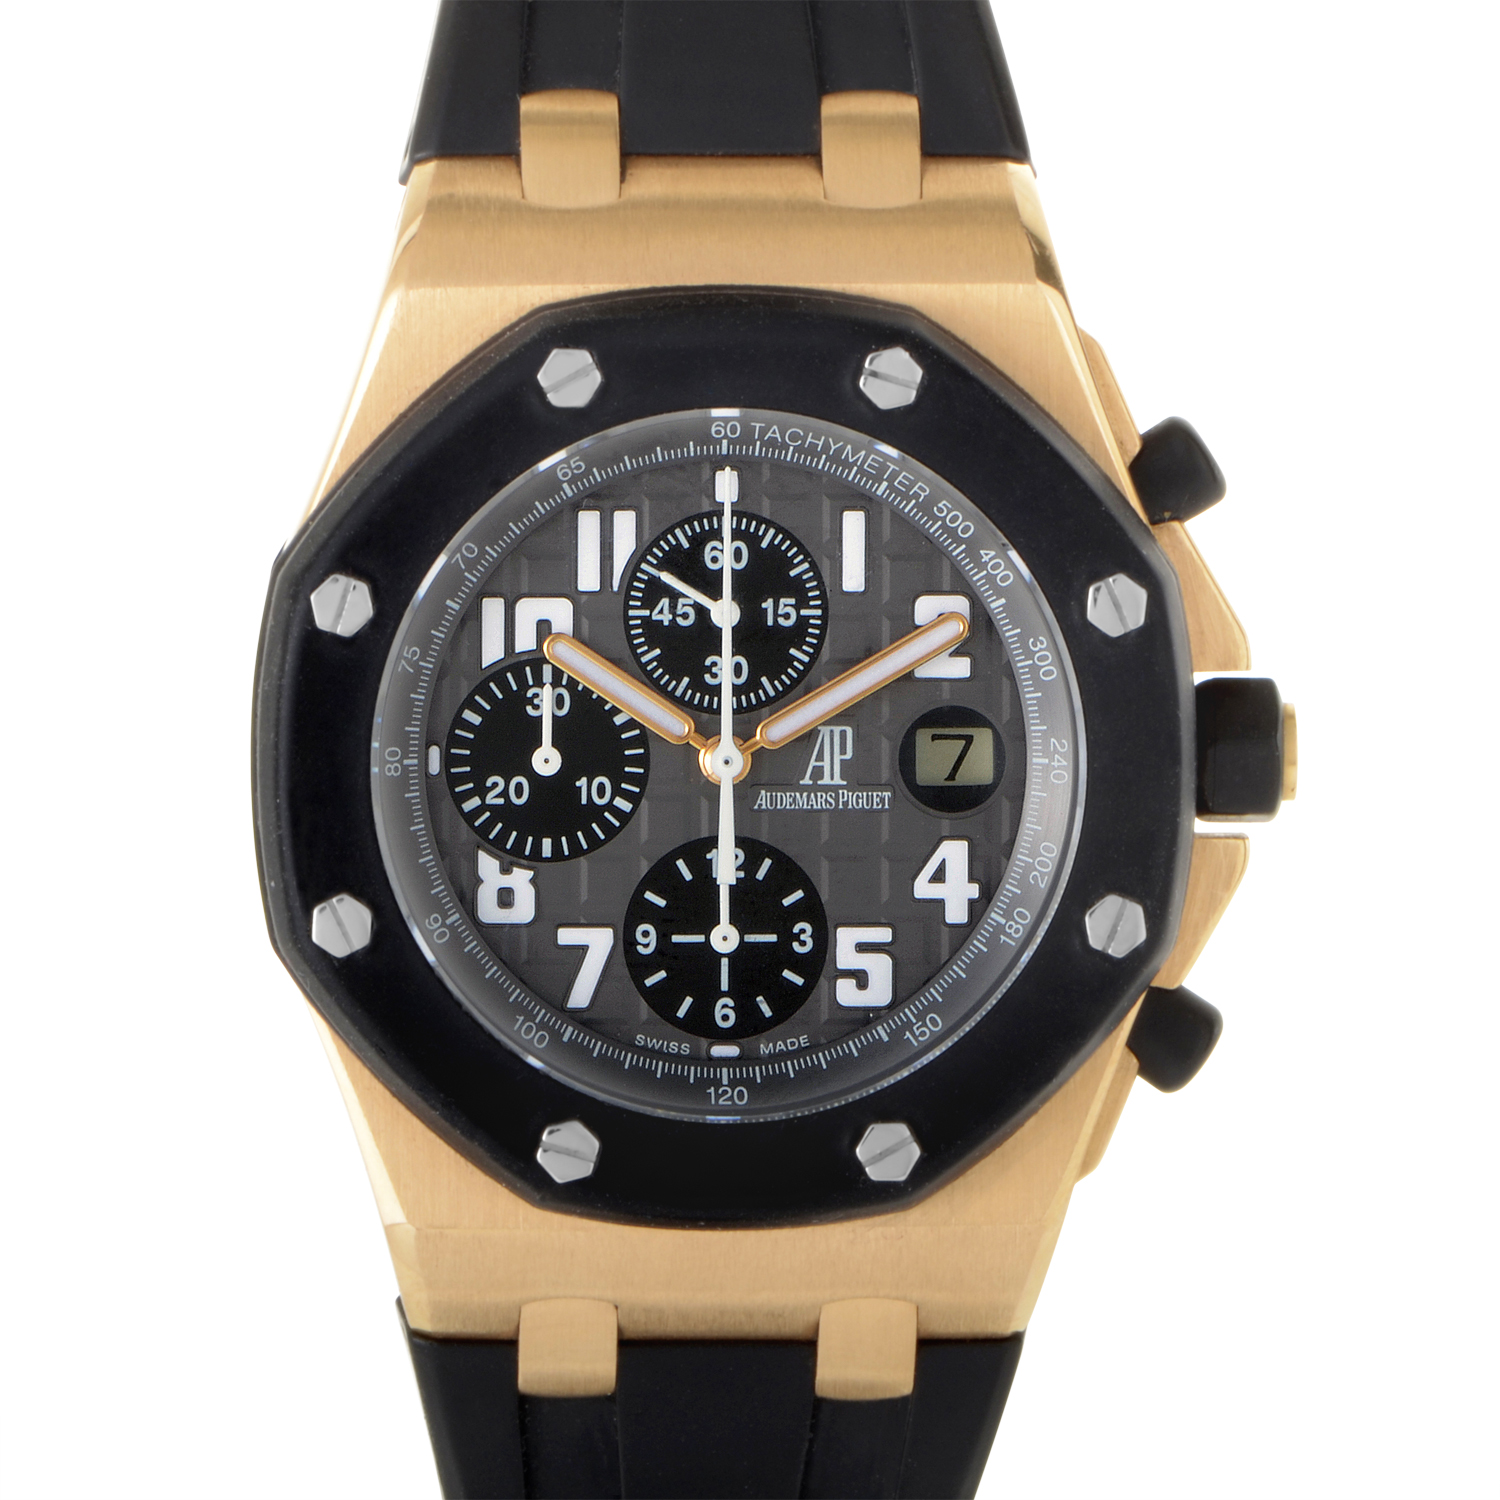 Royal Oak Offshore Chronograph 25940OK.OO.D002CA.02